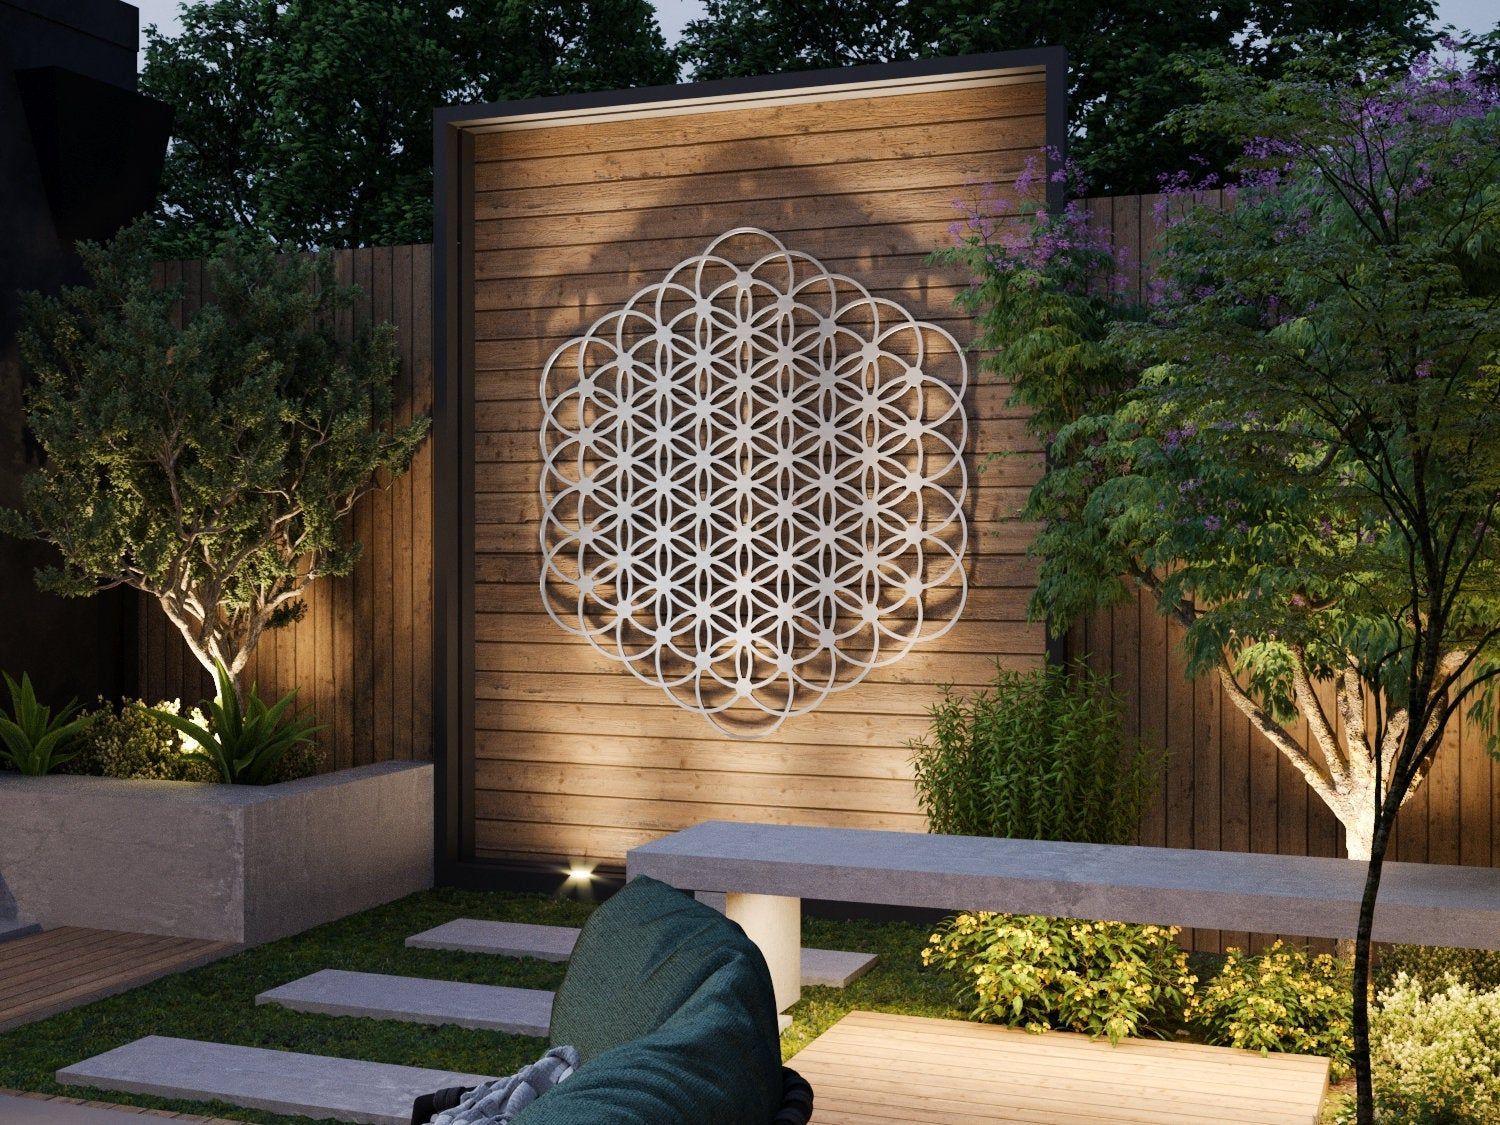 Flower Of Life Outdoor Metal Wall Art Sculpture Sacred Etsy In 2020 Outdoor Wall Art Large Metal Wall Art Large Outdoor Wall Art